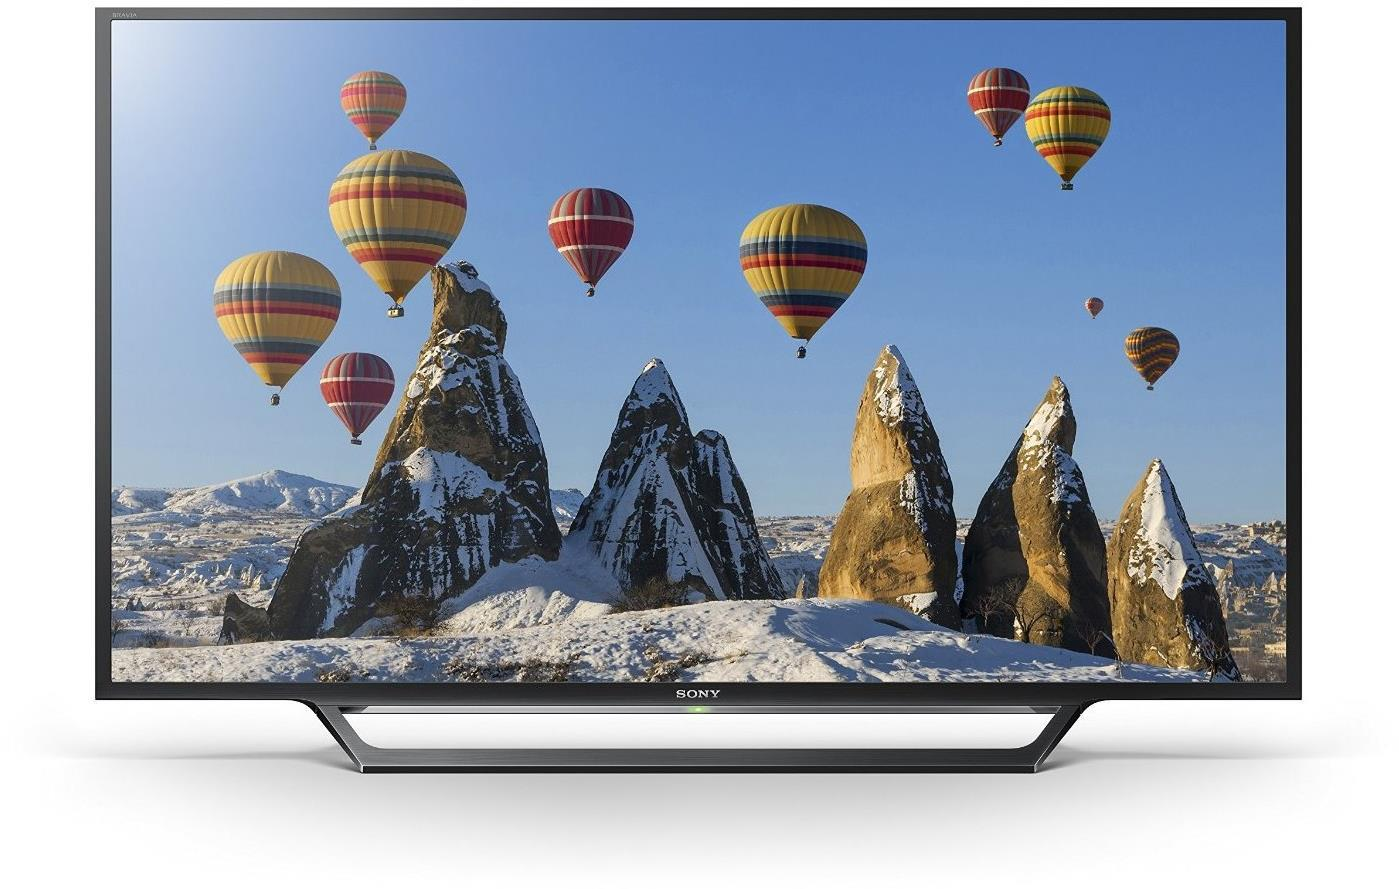 Sony Bravia KDL32WD603BU 32 inch Smart HD Ready 720p LED TV